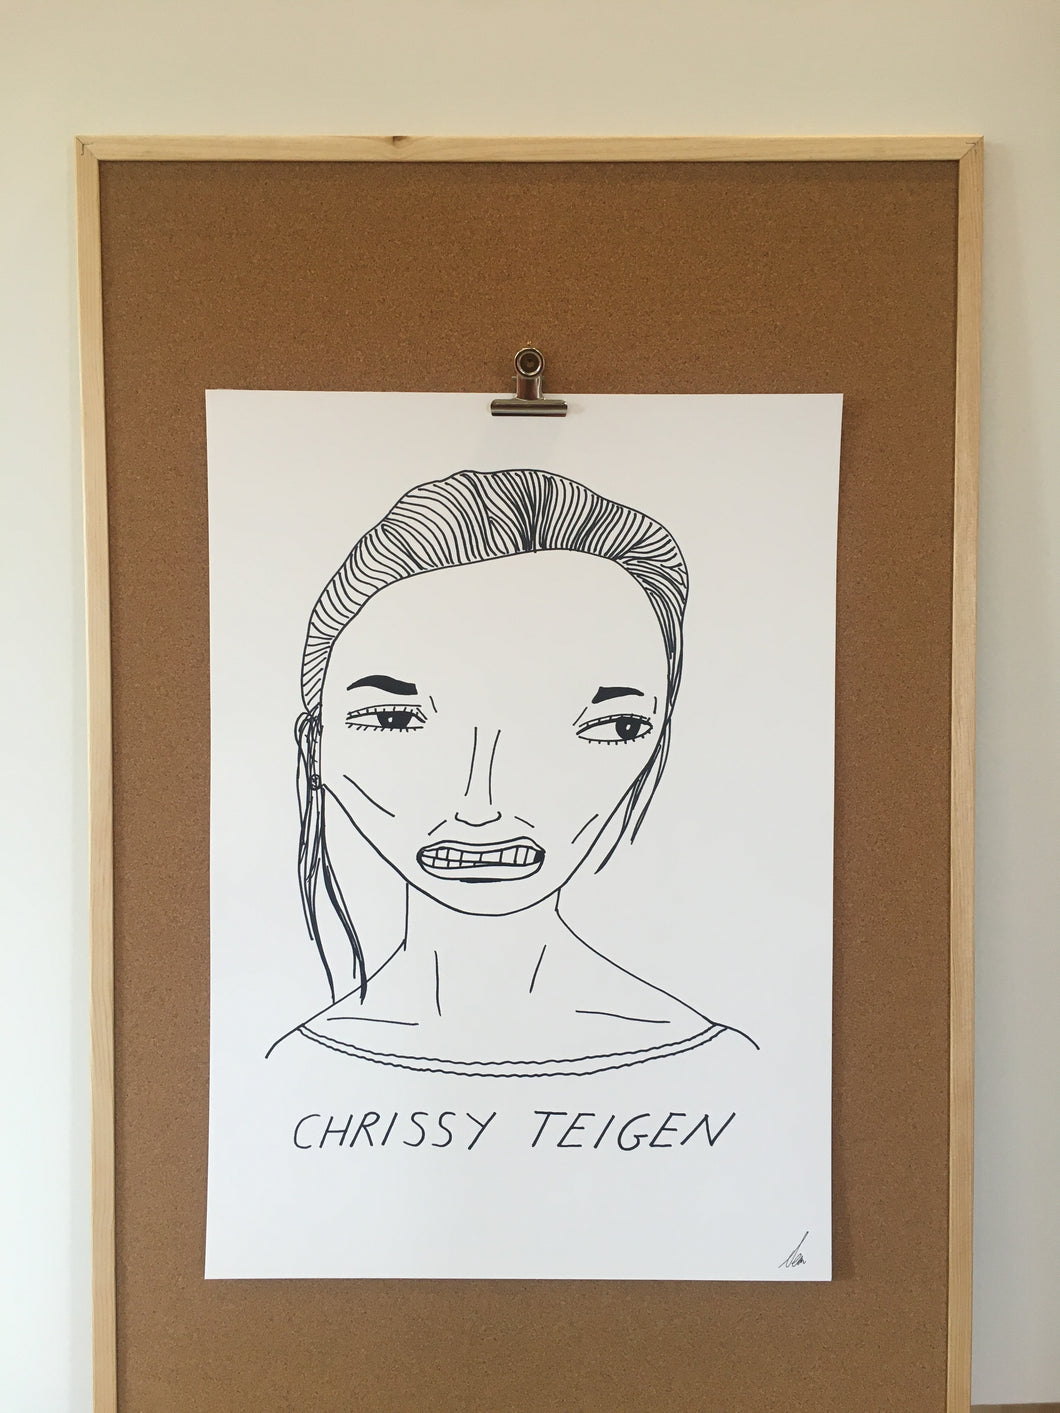 Badly Drawn Chrissy Teigen - Original Drawing - A2.